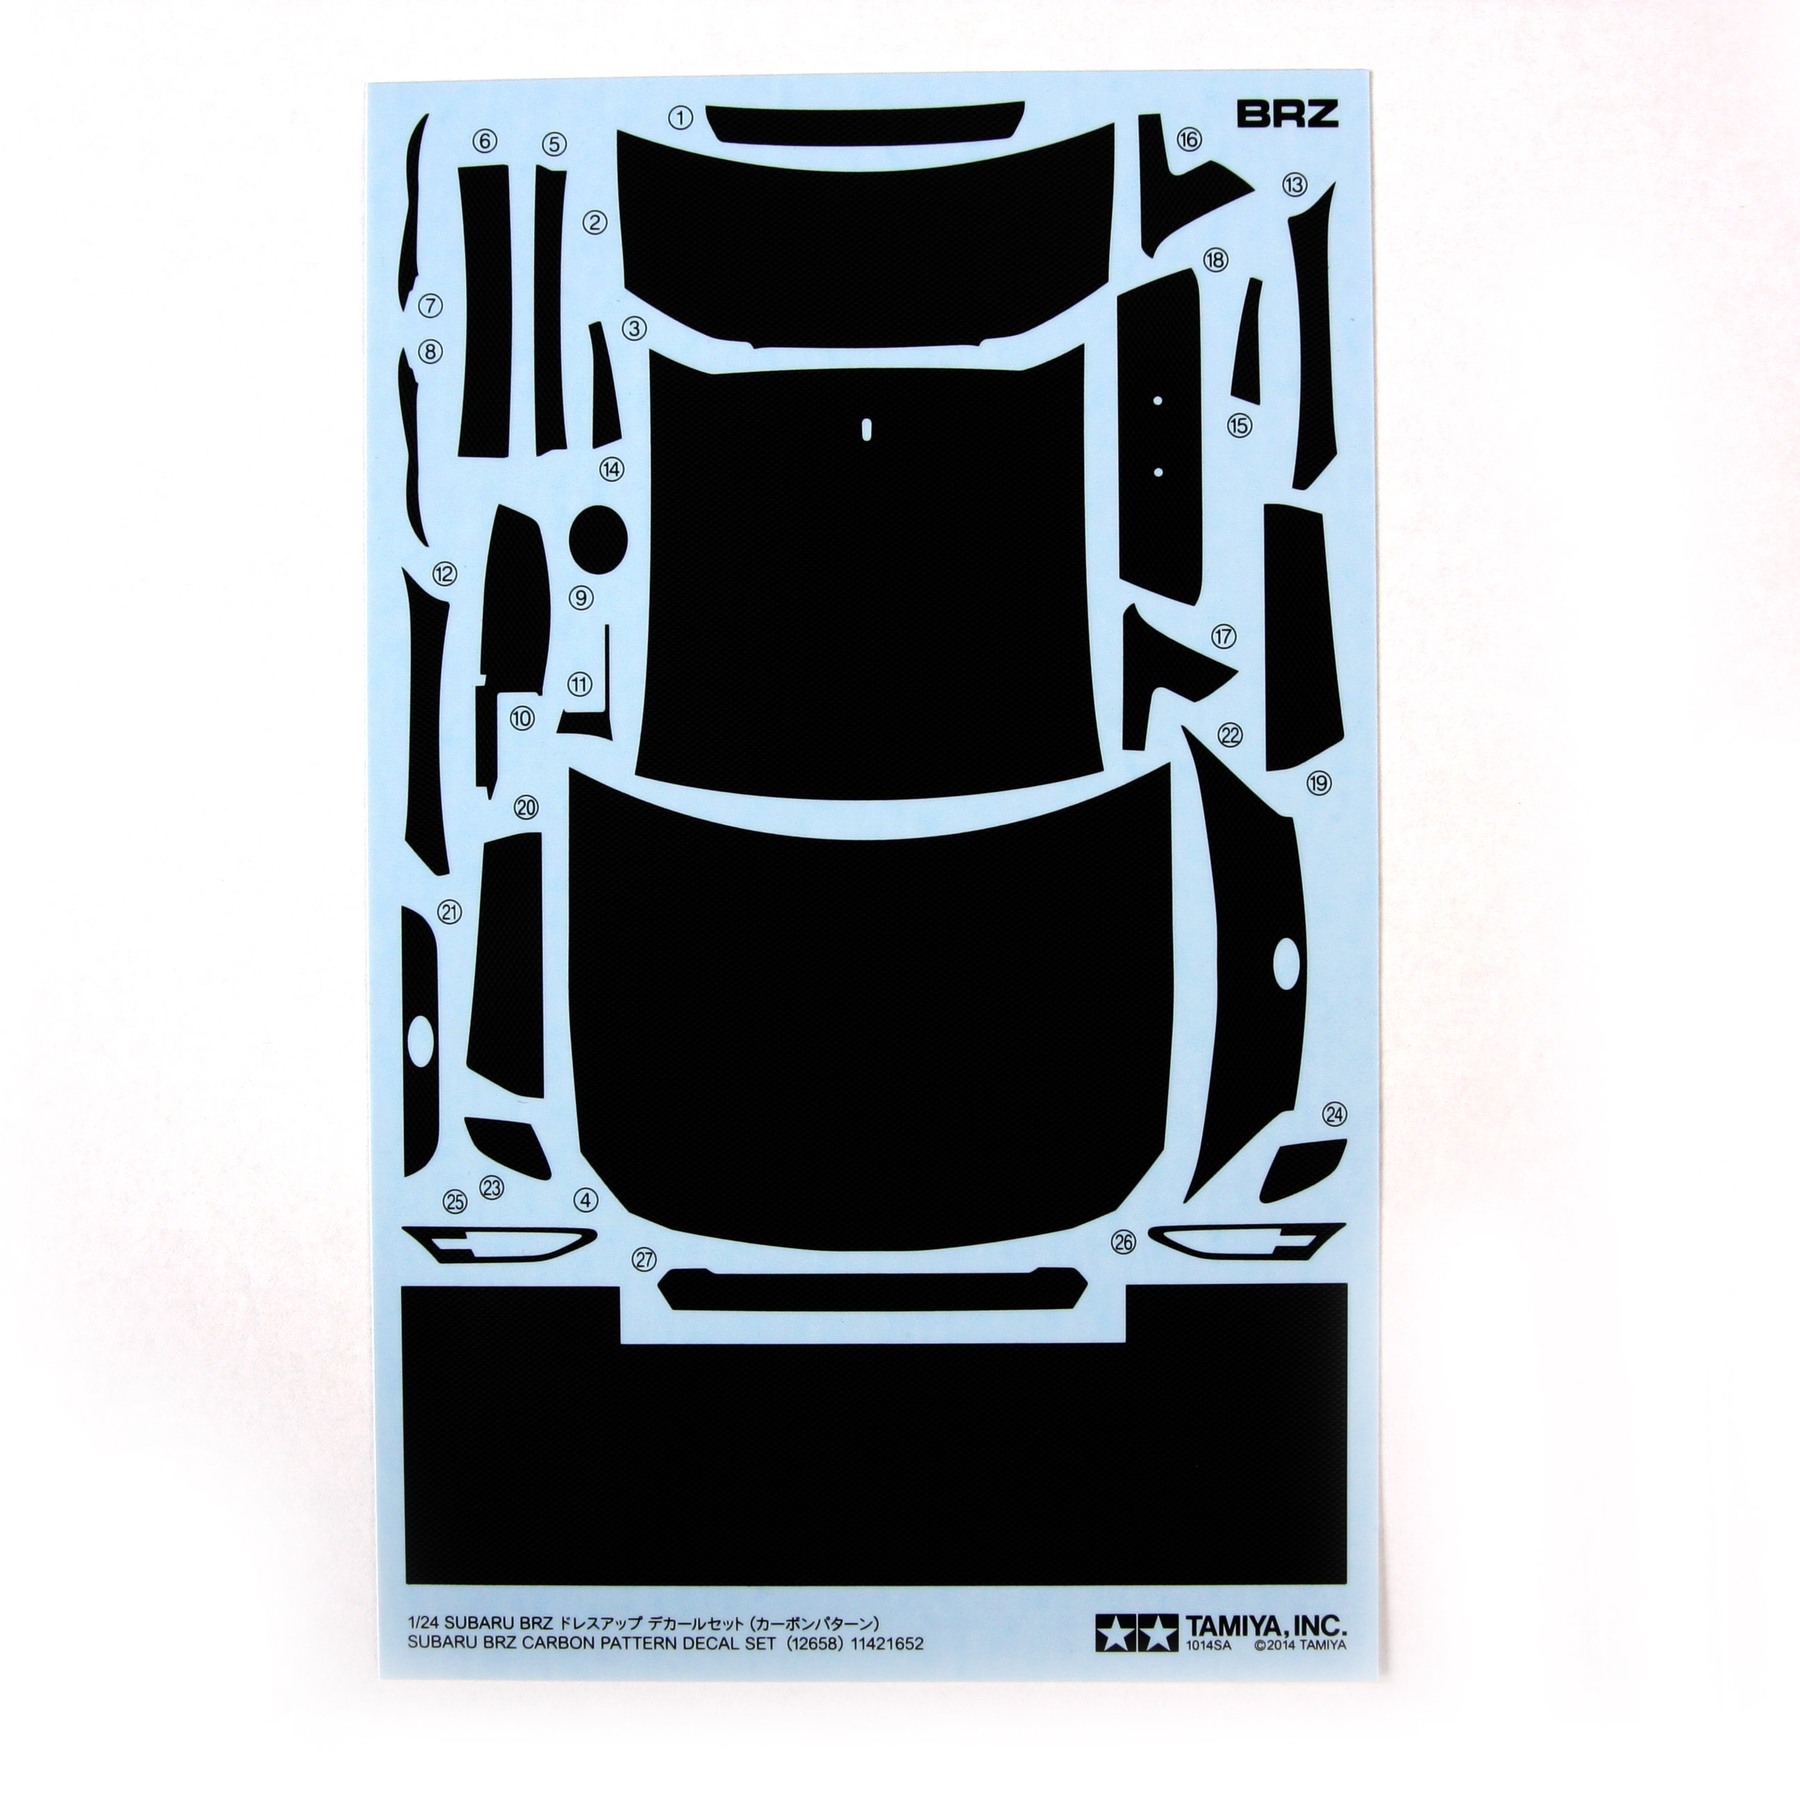 1/24 Subaru Brz Decal Set